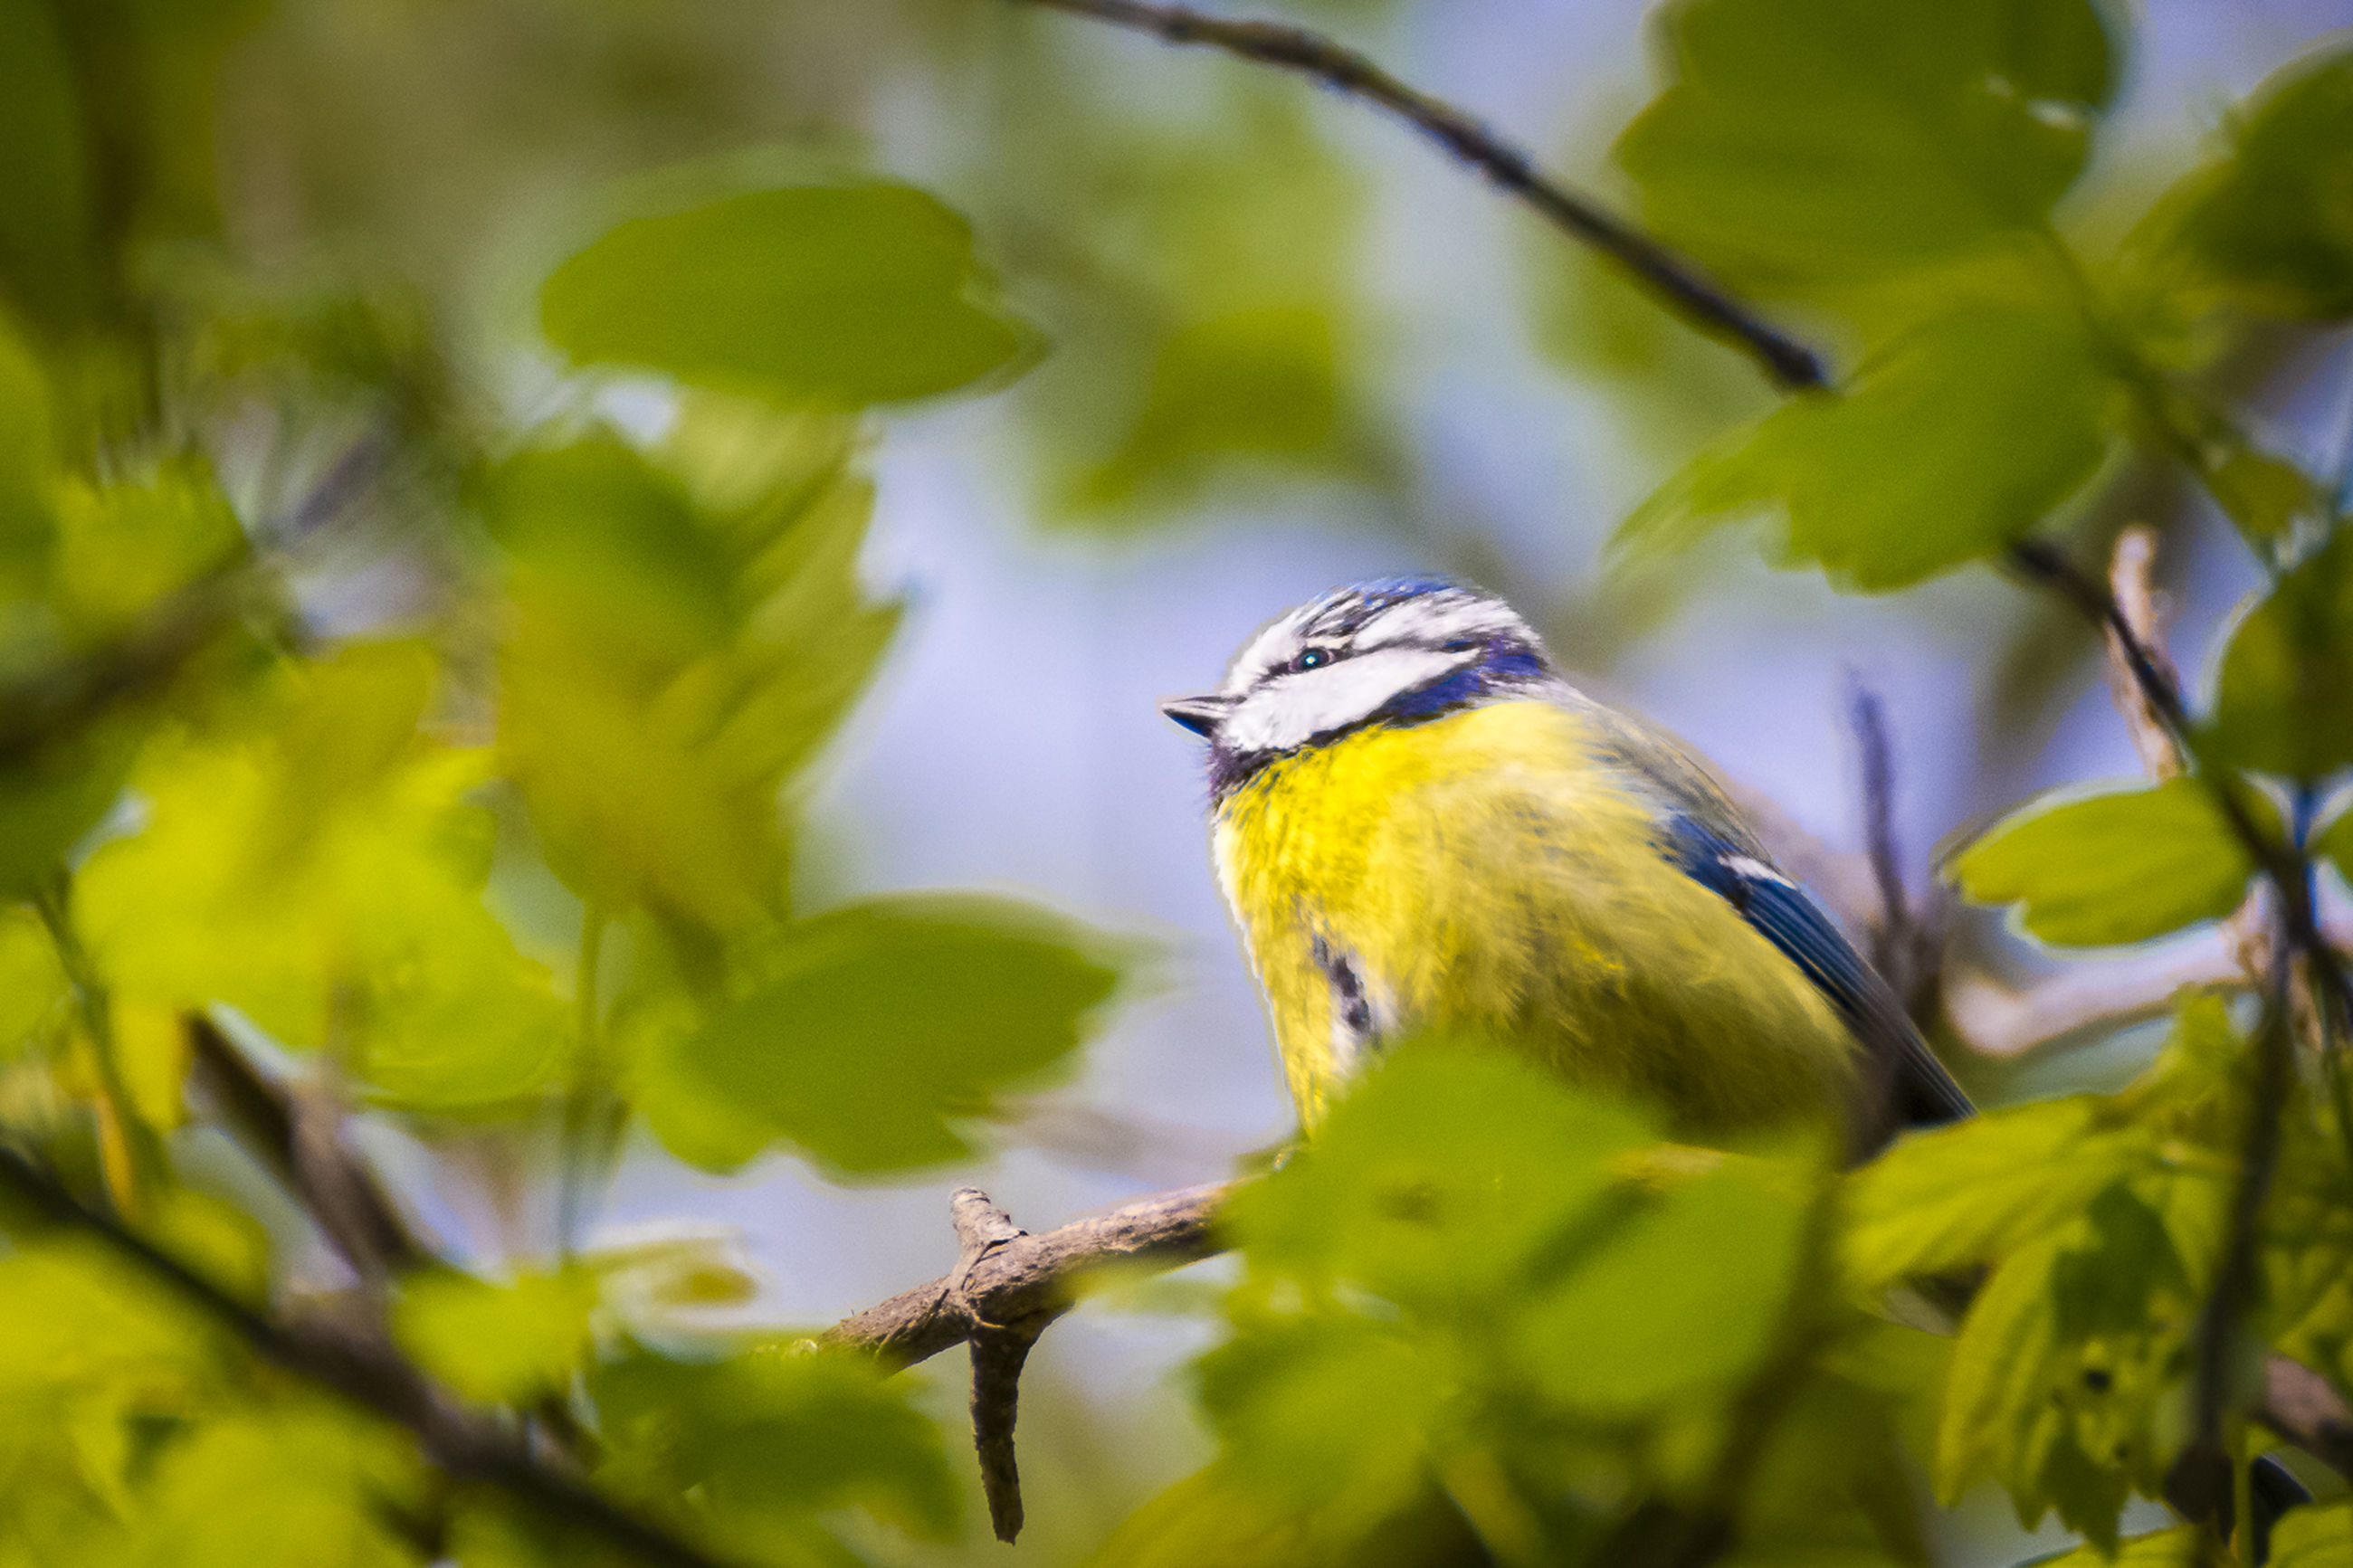 animal themes, one animal, animals in the wild, wildlife, bird, branch, perching, tree, focus on foreground, leaf, nature, close-up, selective focus, full length, yellow, low angle view, day, outdoors, side view, beauty in nature